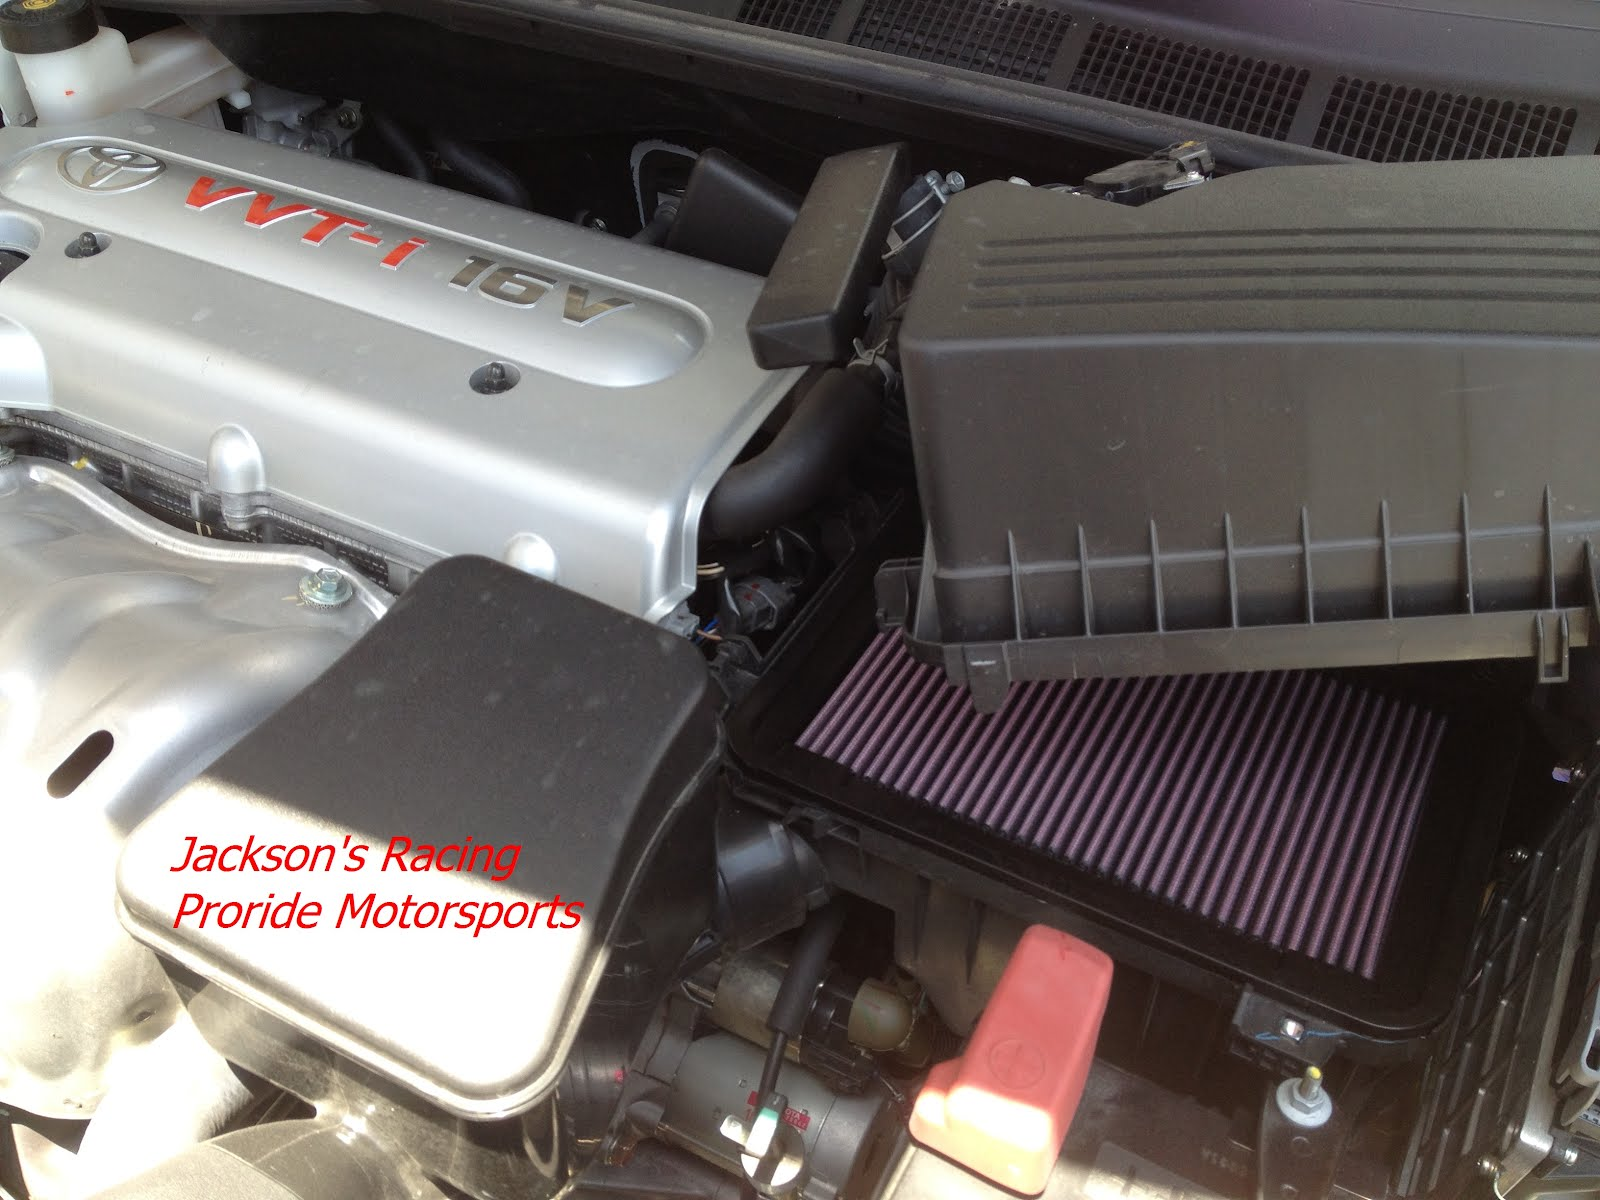 brand new toyota camry engine grand avanza 2018 putih pro ride motorsports k and n for 2 4